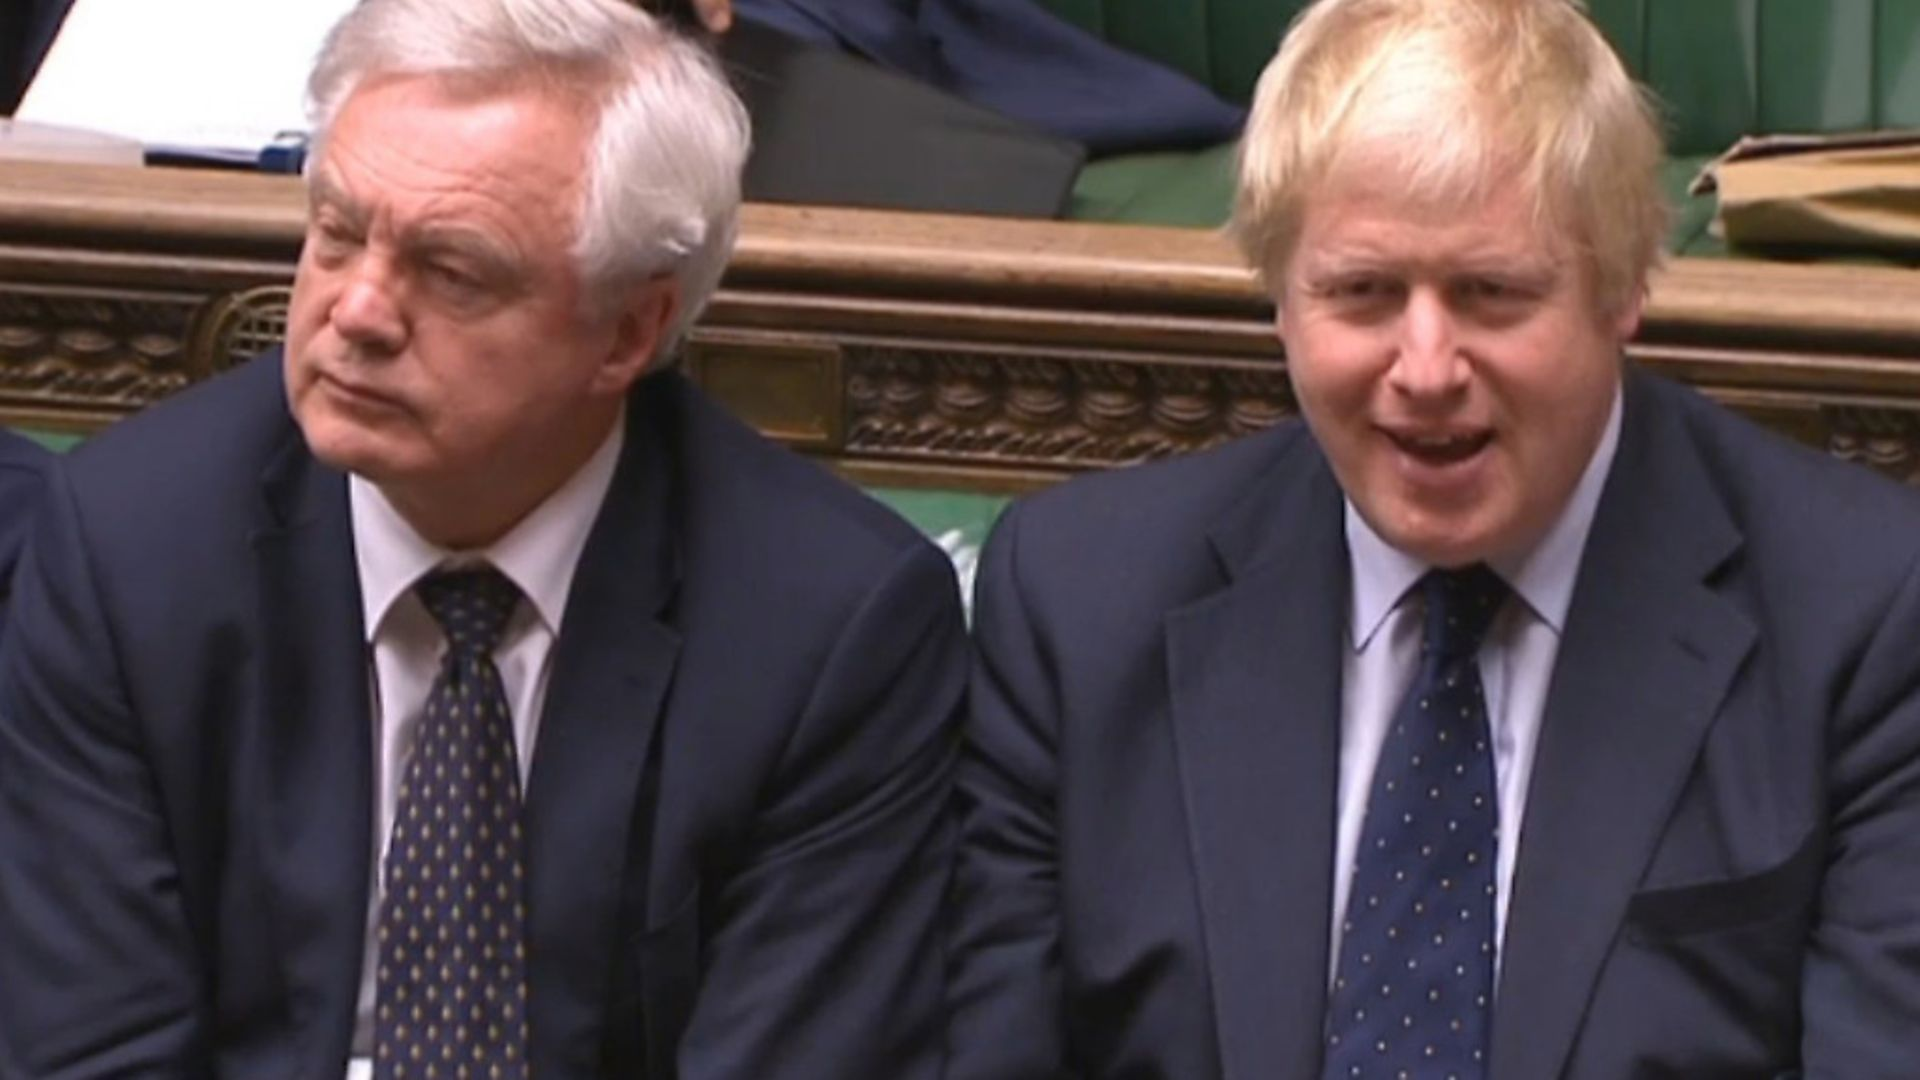 Brexit Secretary David Davis and Foreign Secretary Boris Johnson in the House of Commons, London. PA Archive/PA Images - Credit: PA Archive/PA Images